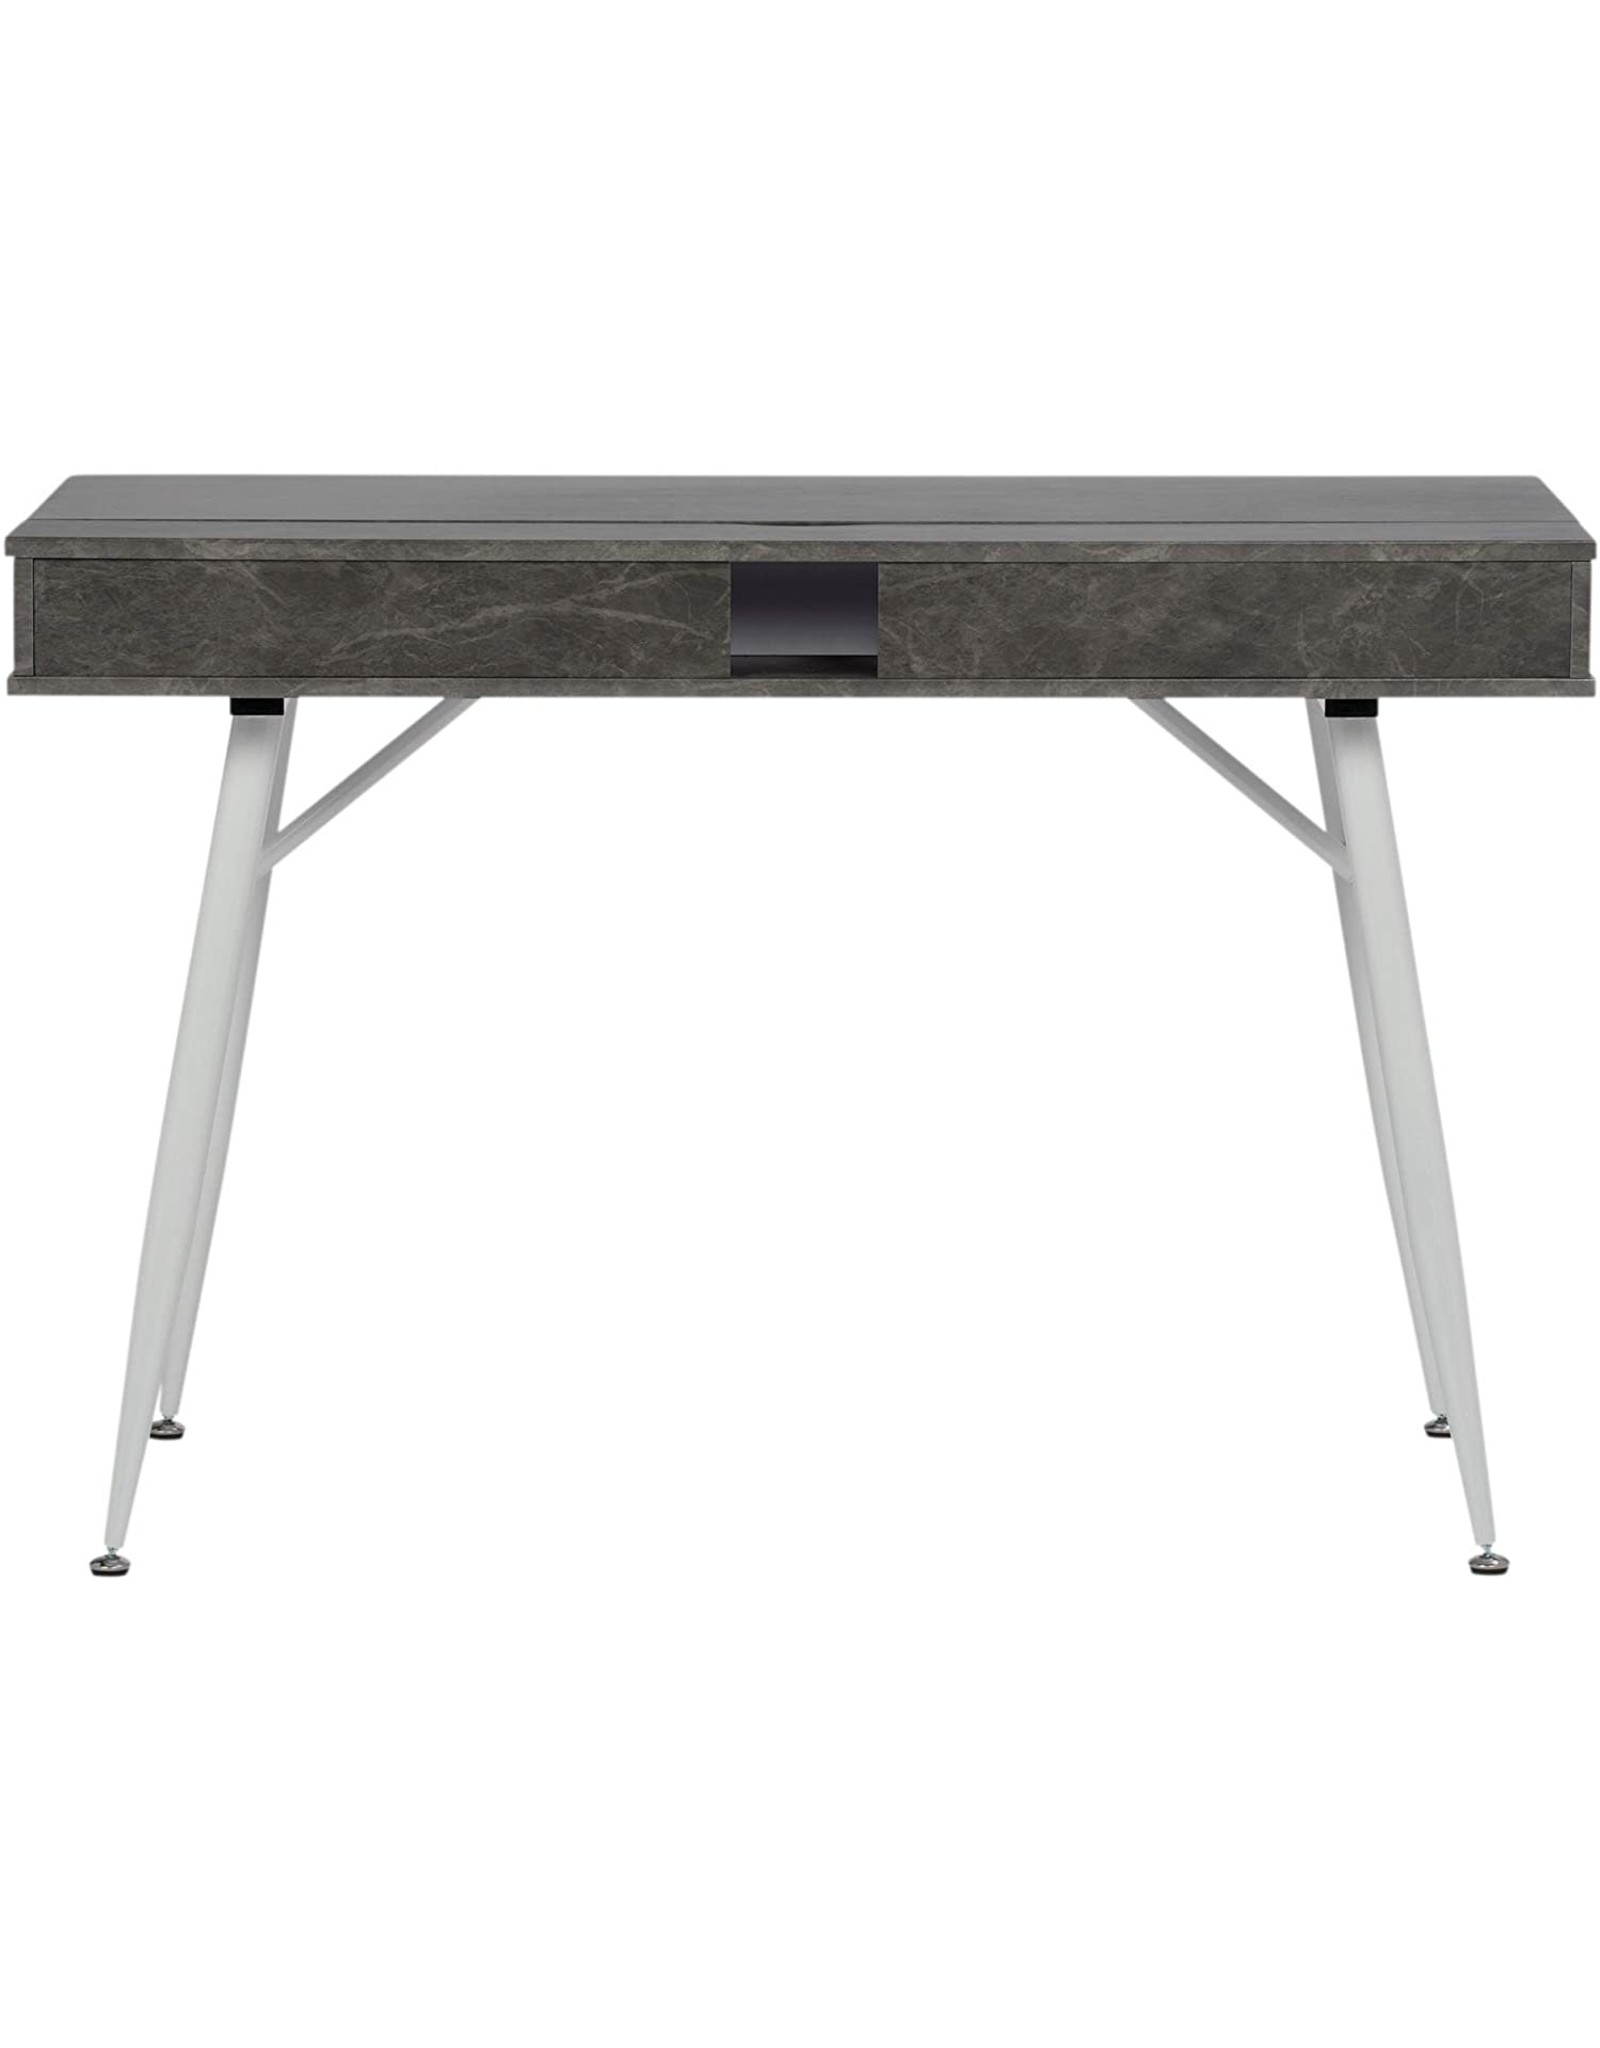 Calico Designs Calico Designs 51252 Alcove Modern Large Split Drawer in White/Cement Gray Desk with Storage, White/Cement Gray, White/Cement Gray